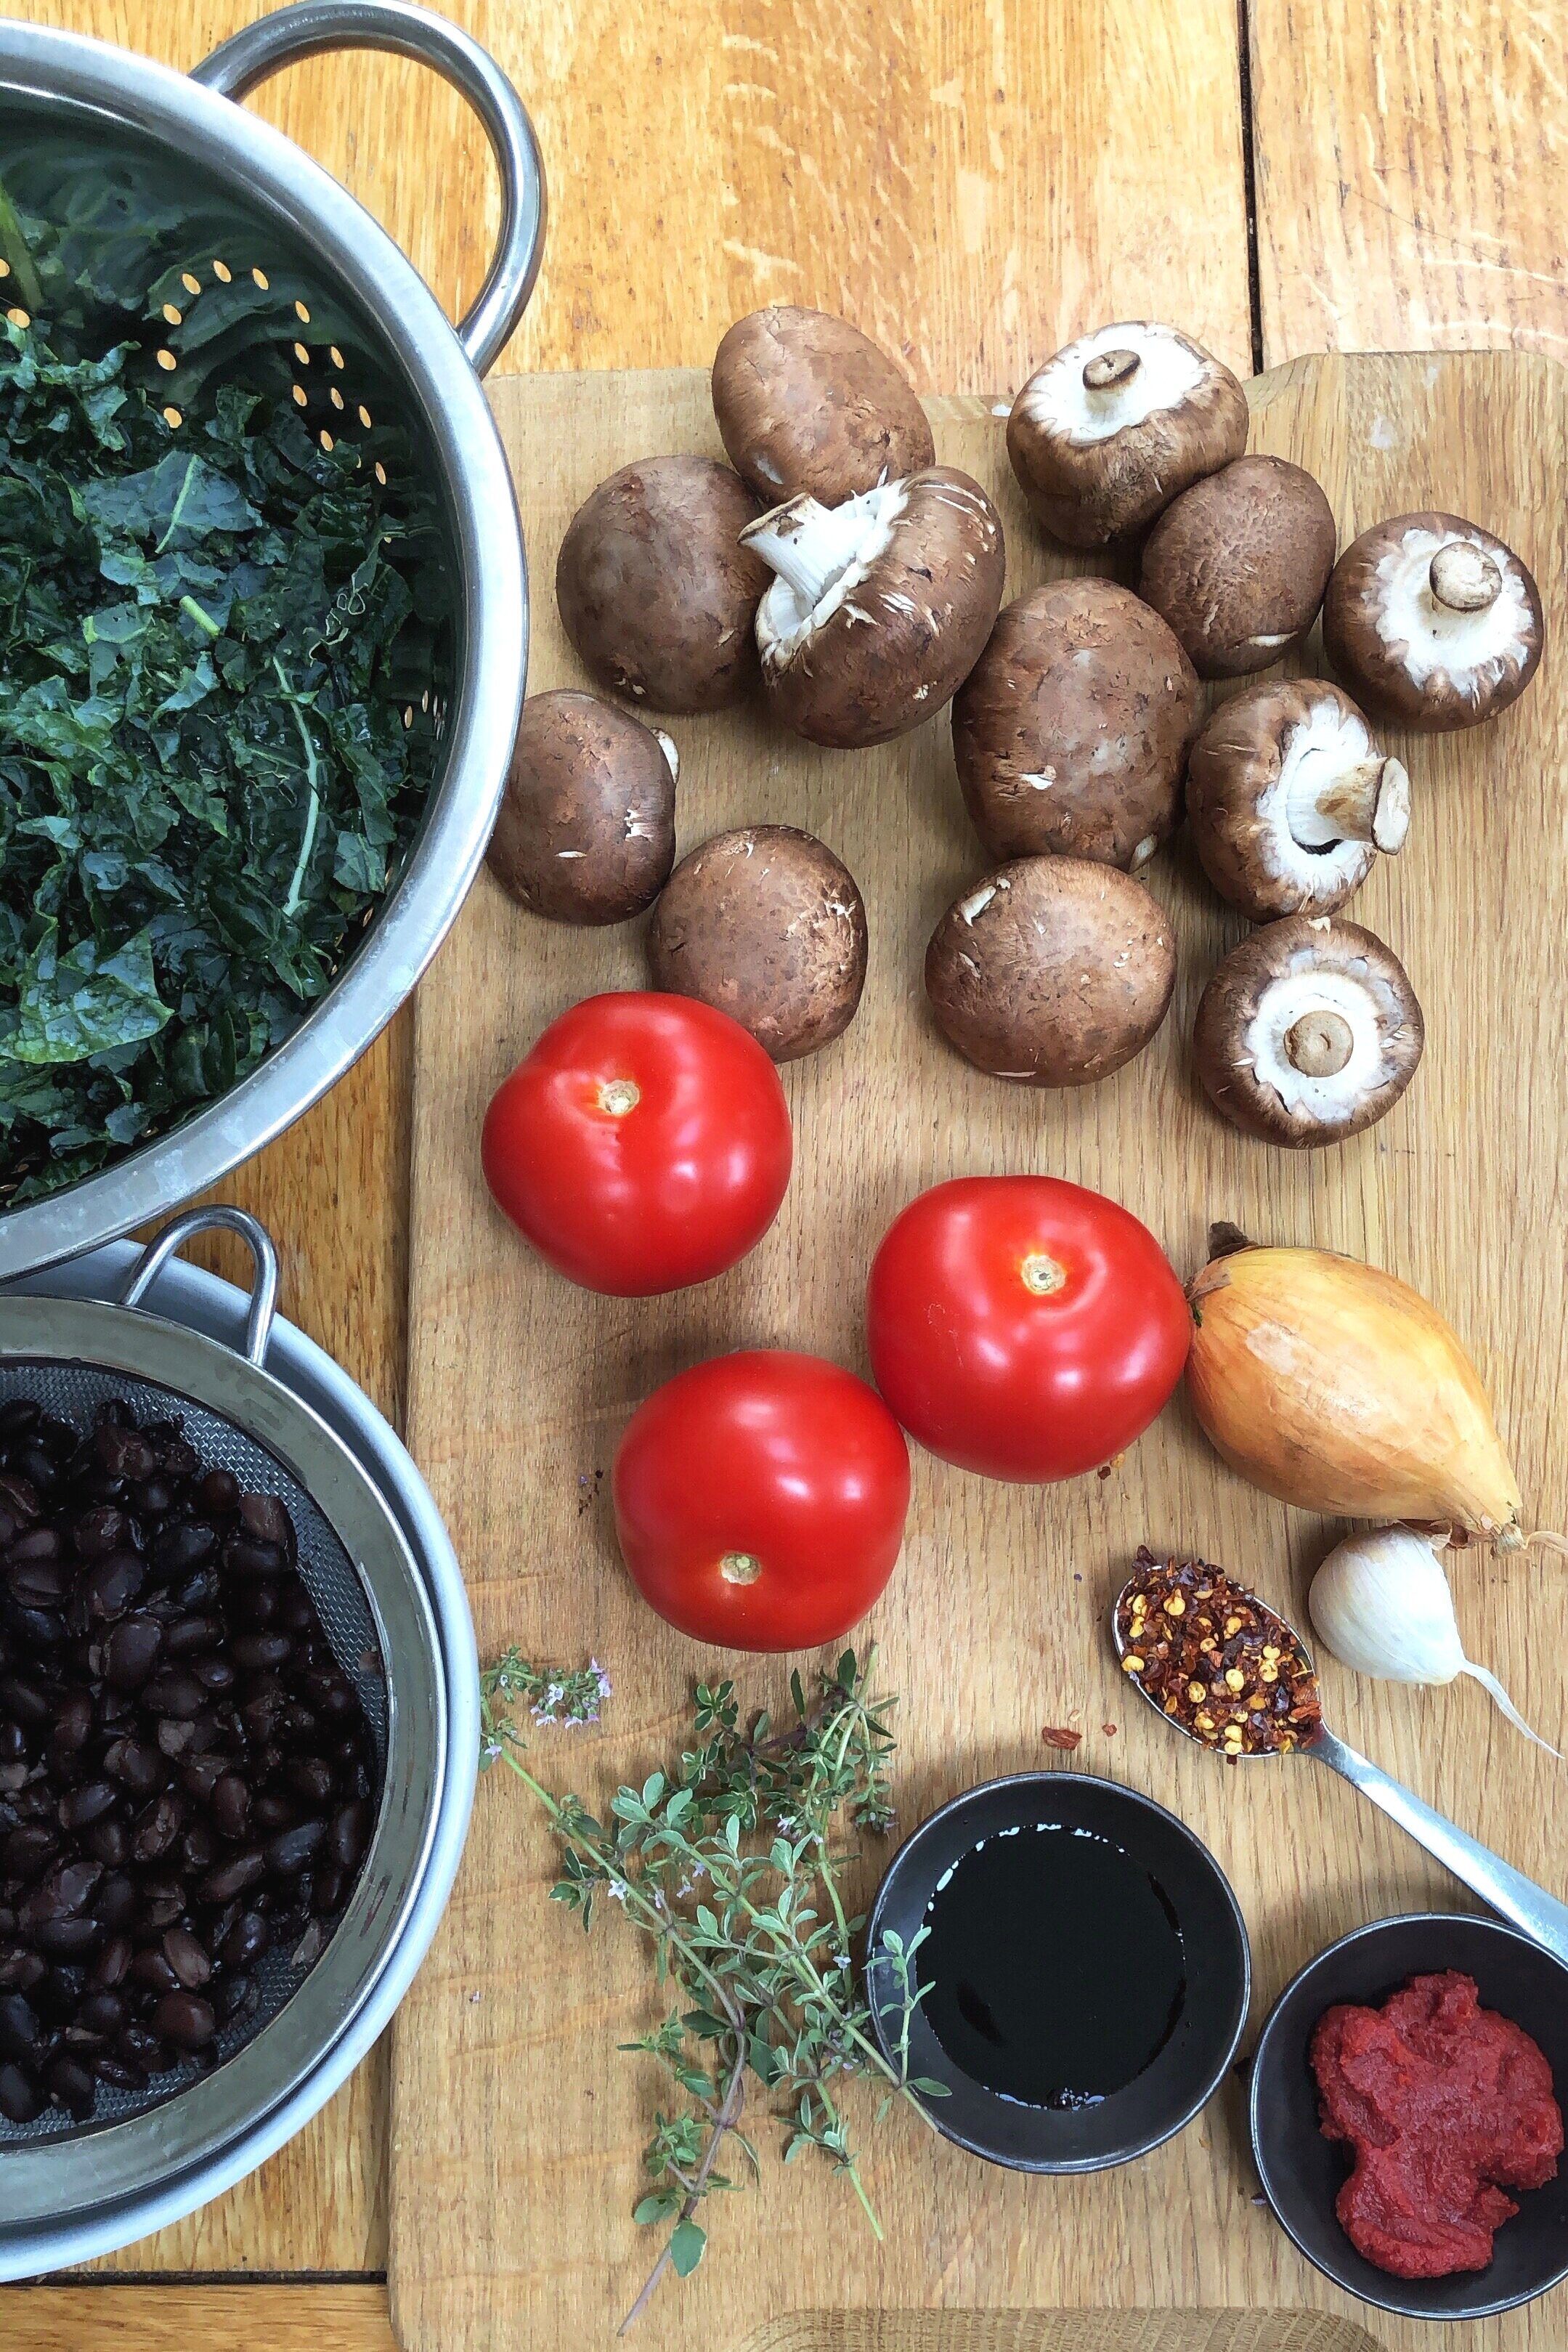 Ingredients for the Spicy Beans, Greens and Mushrooms